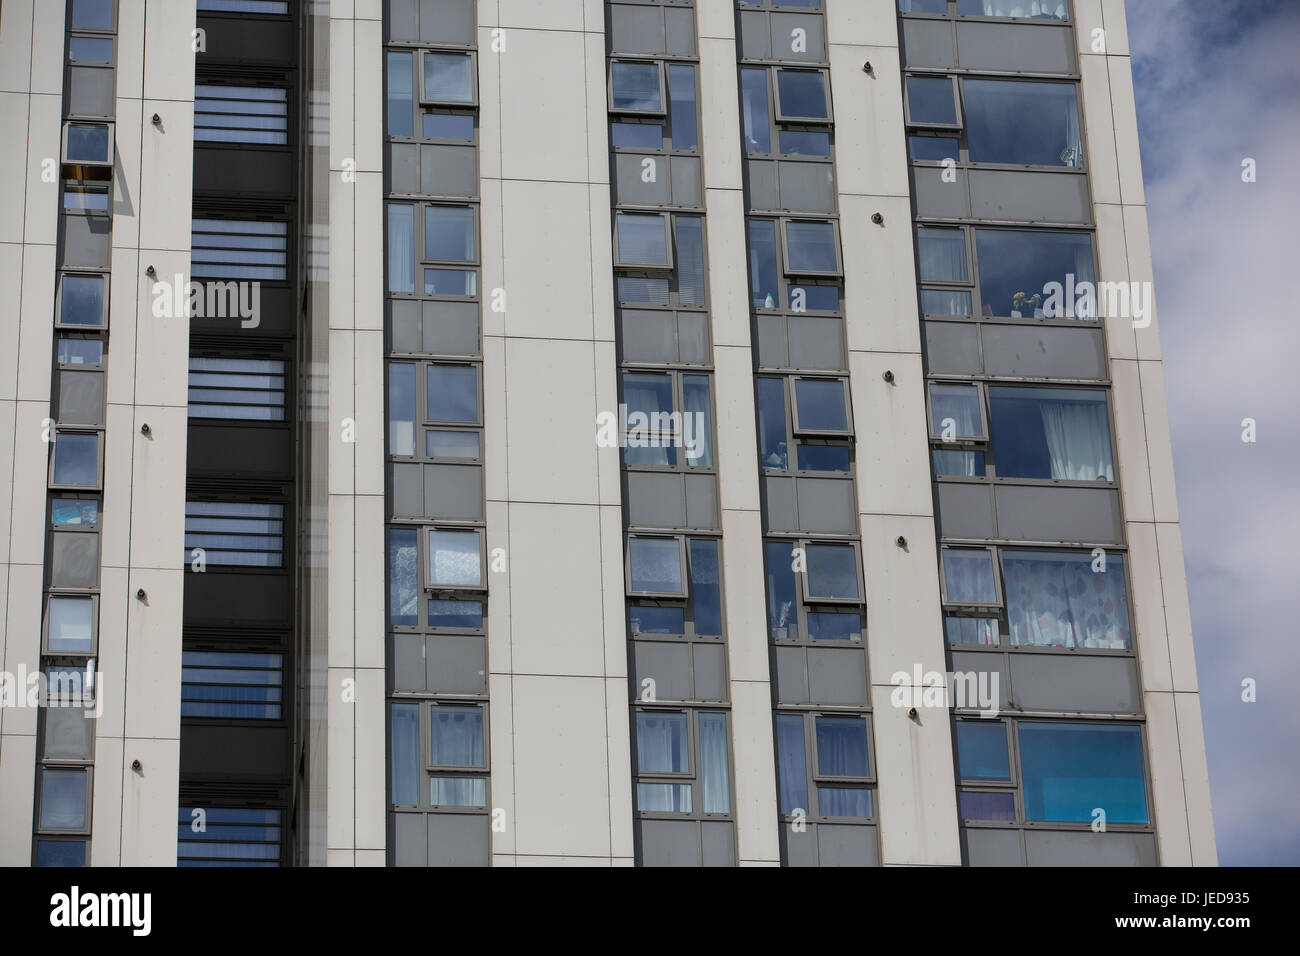 London, UK. 23rd June, 2017. Cladding panels on Dorney Tower in the Chalcots Estate in Camden. 600 households in - Stock Image